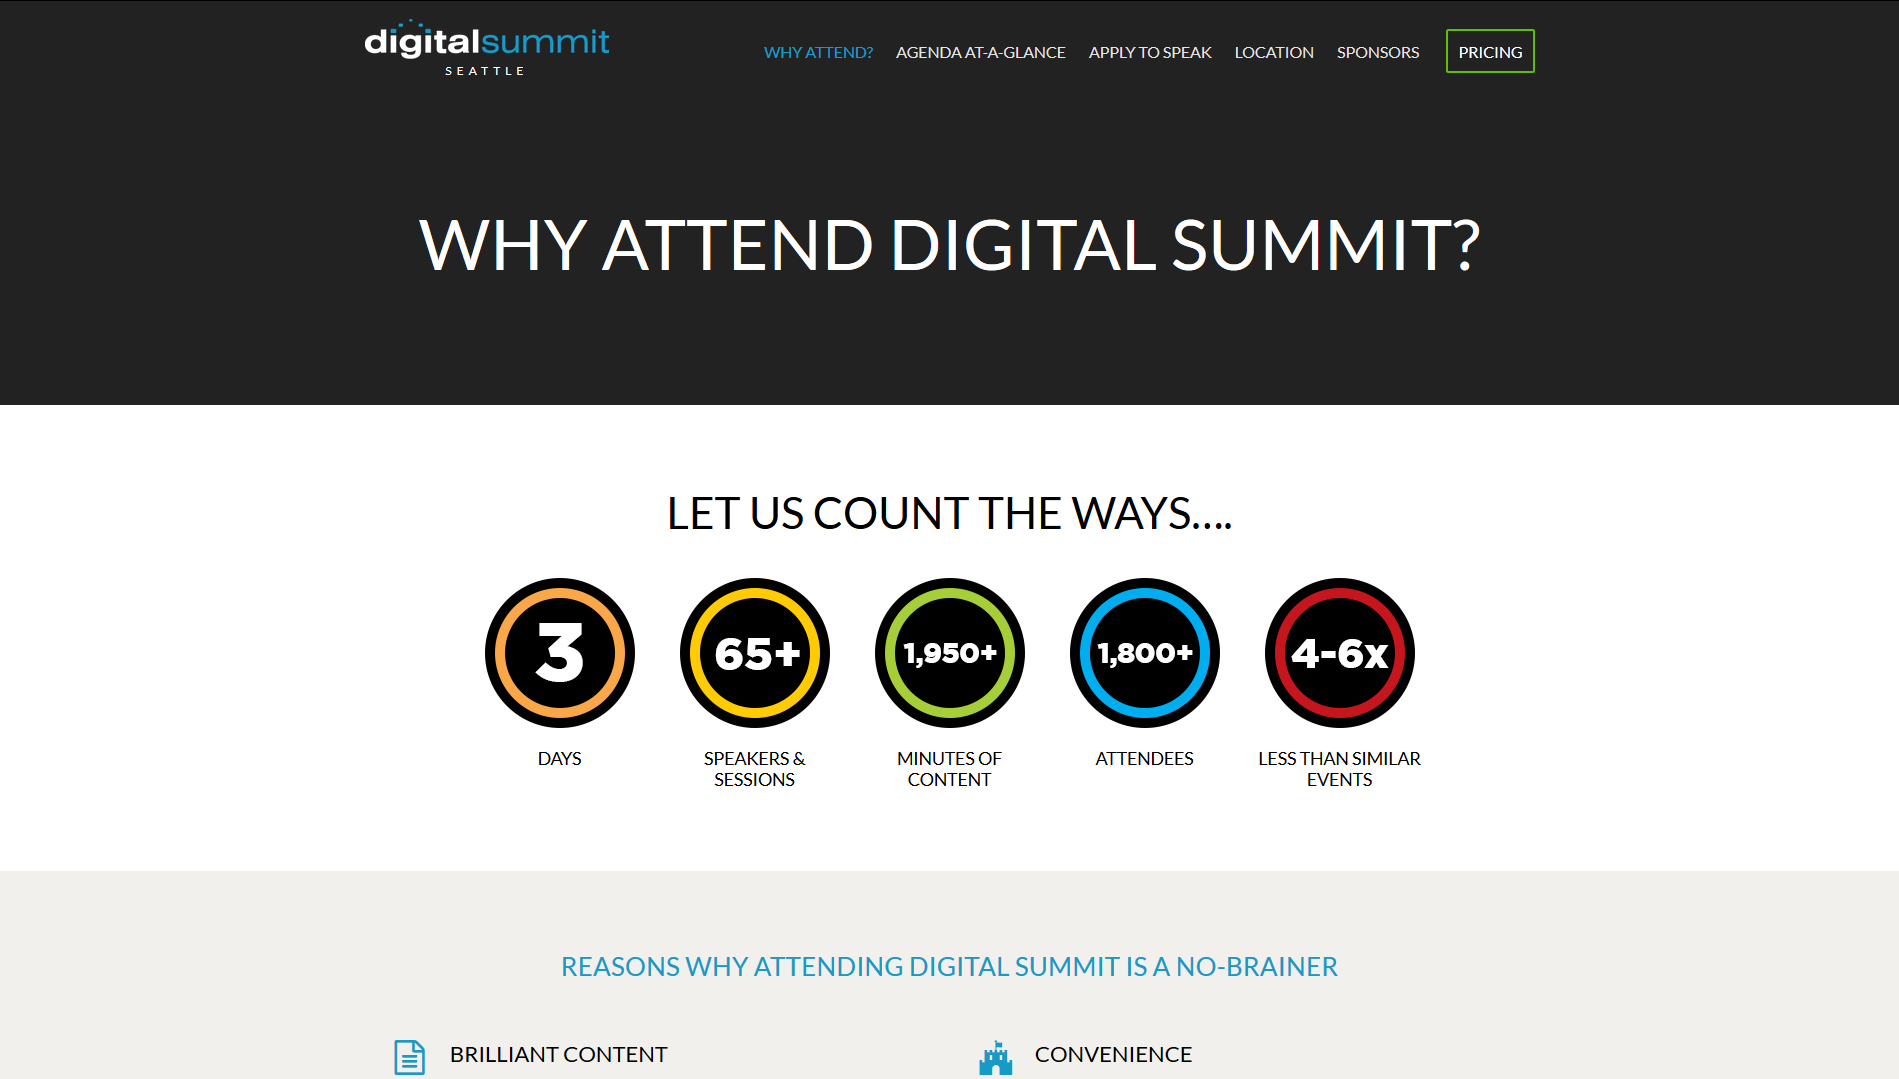 Digital Summit Seattle has more than 60 speakers and 2000 minutes of content